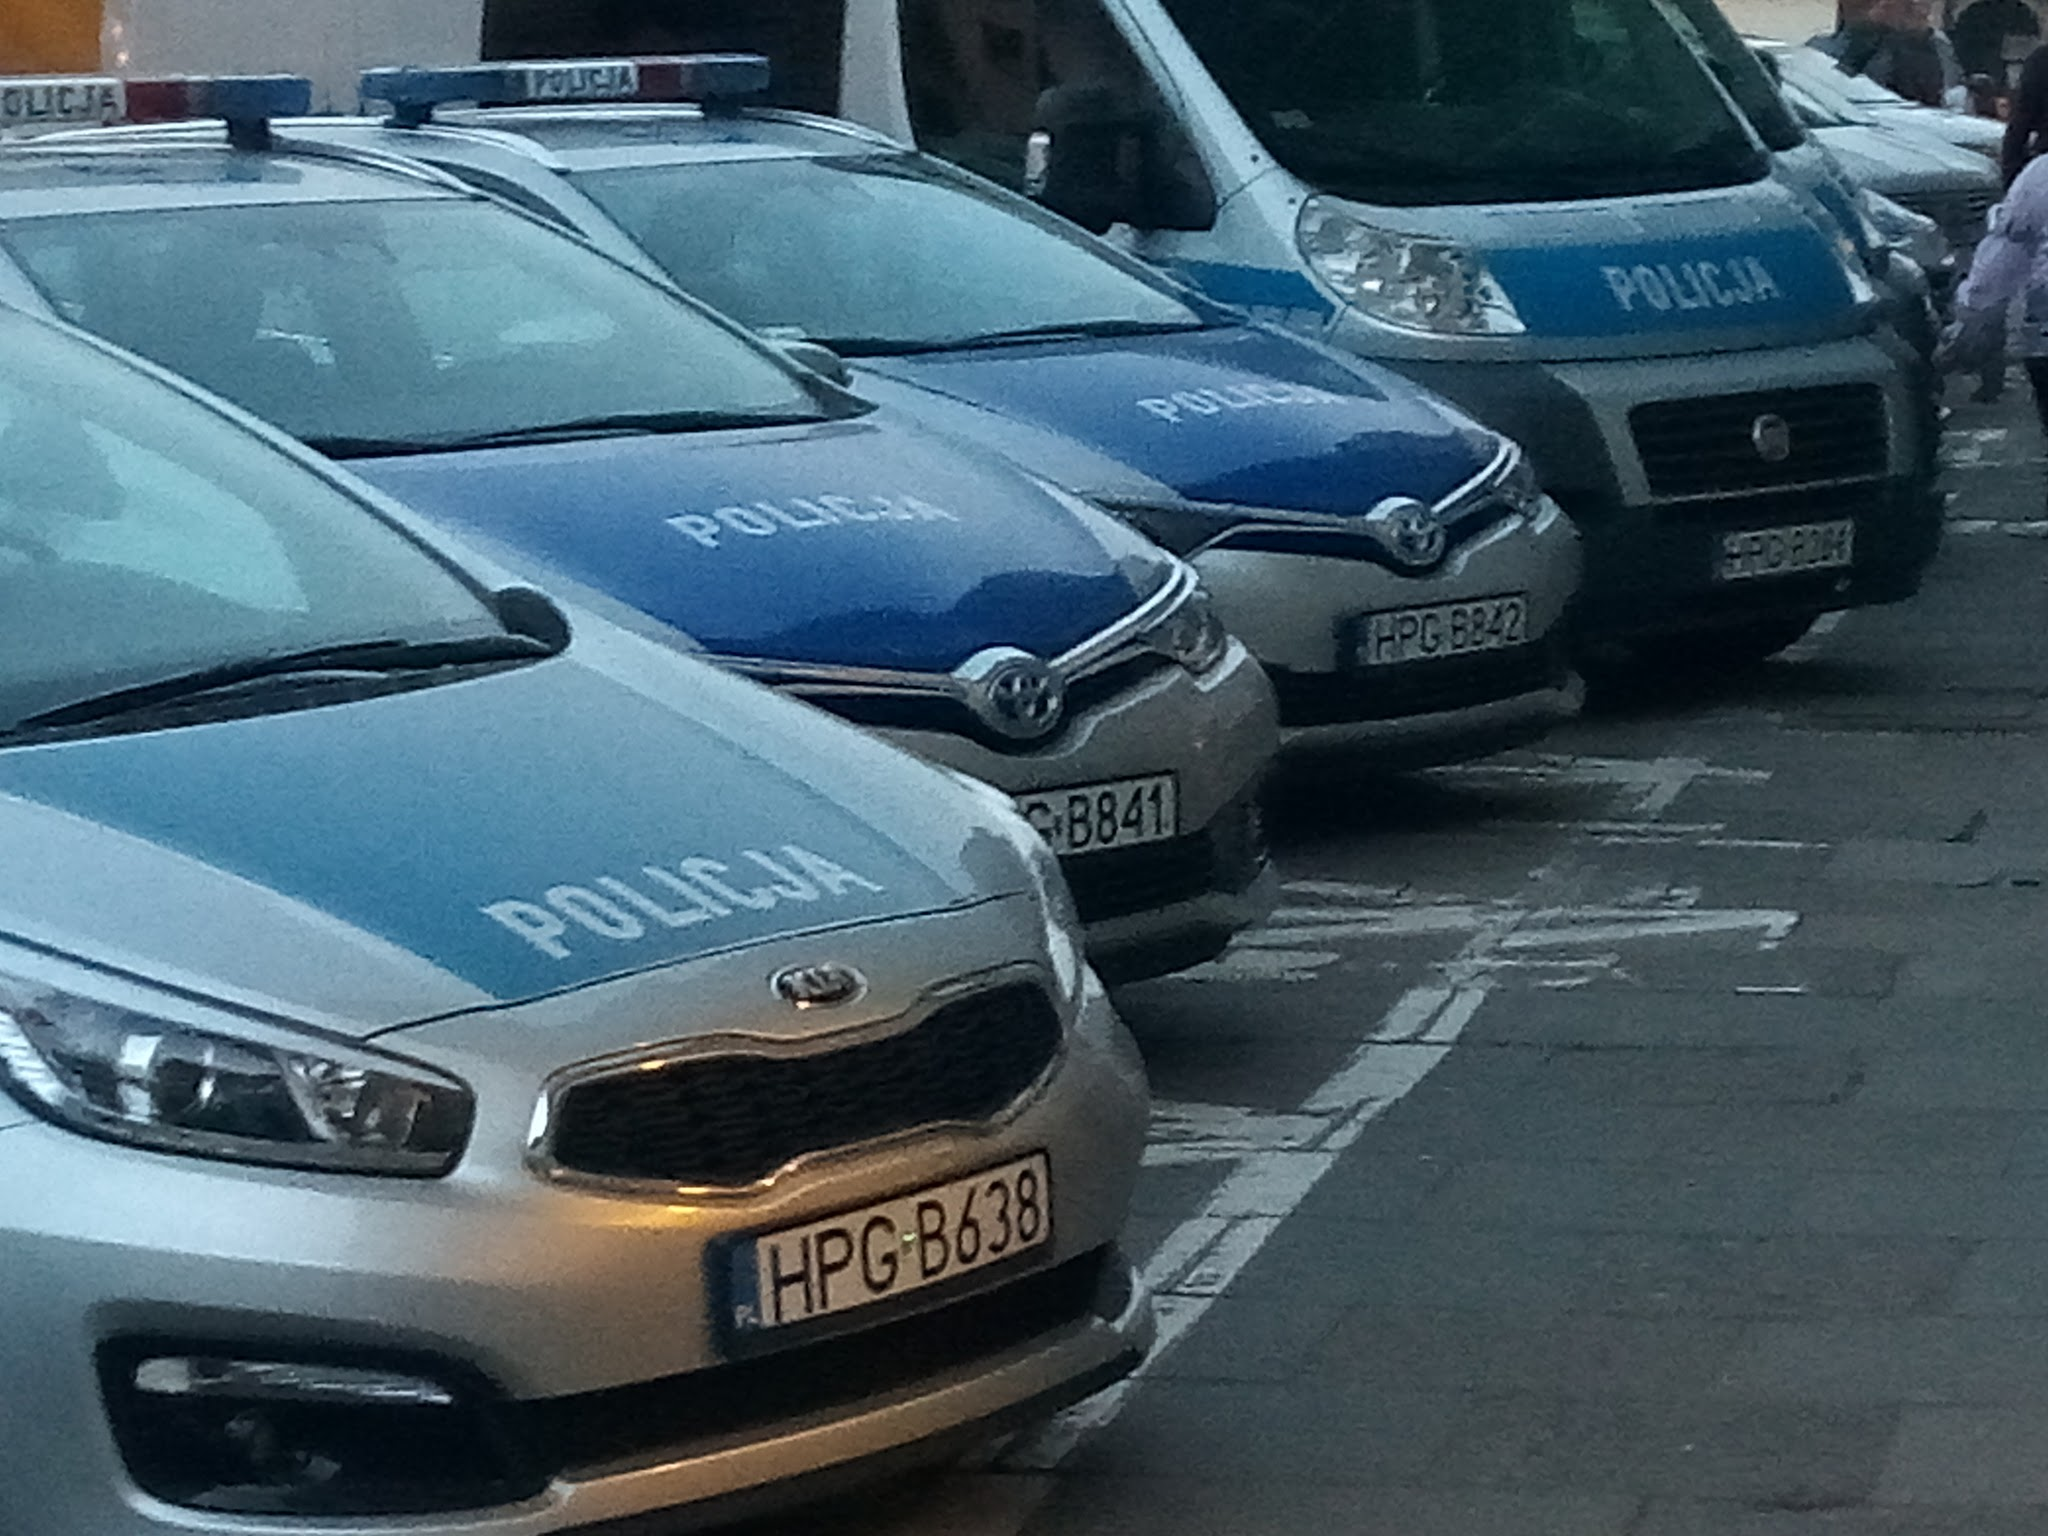 Row of Kia police cars